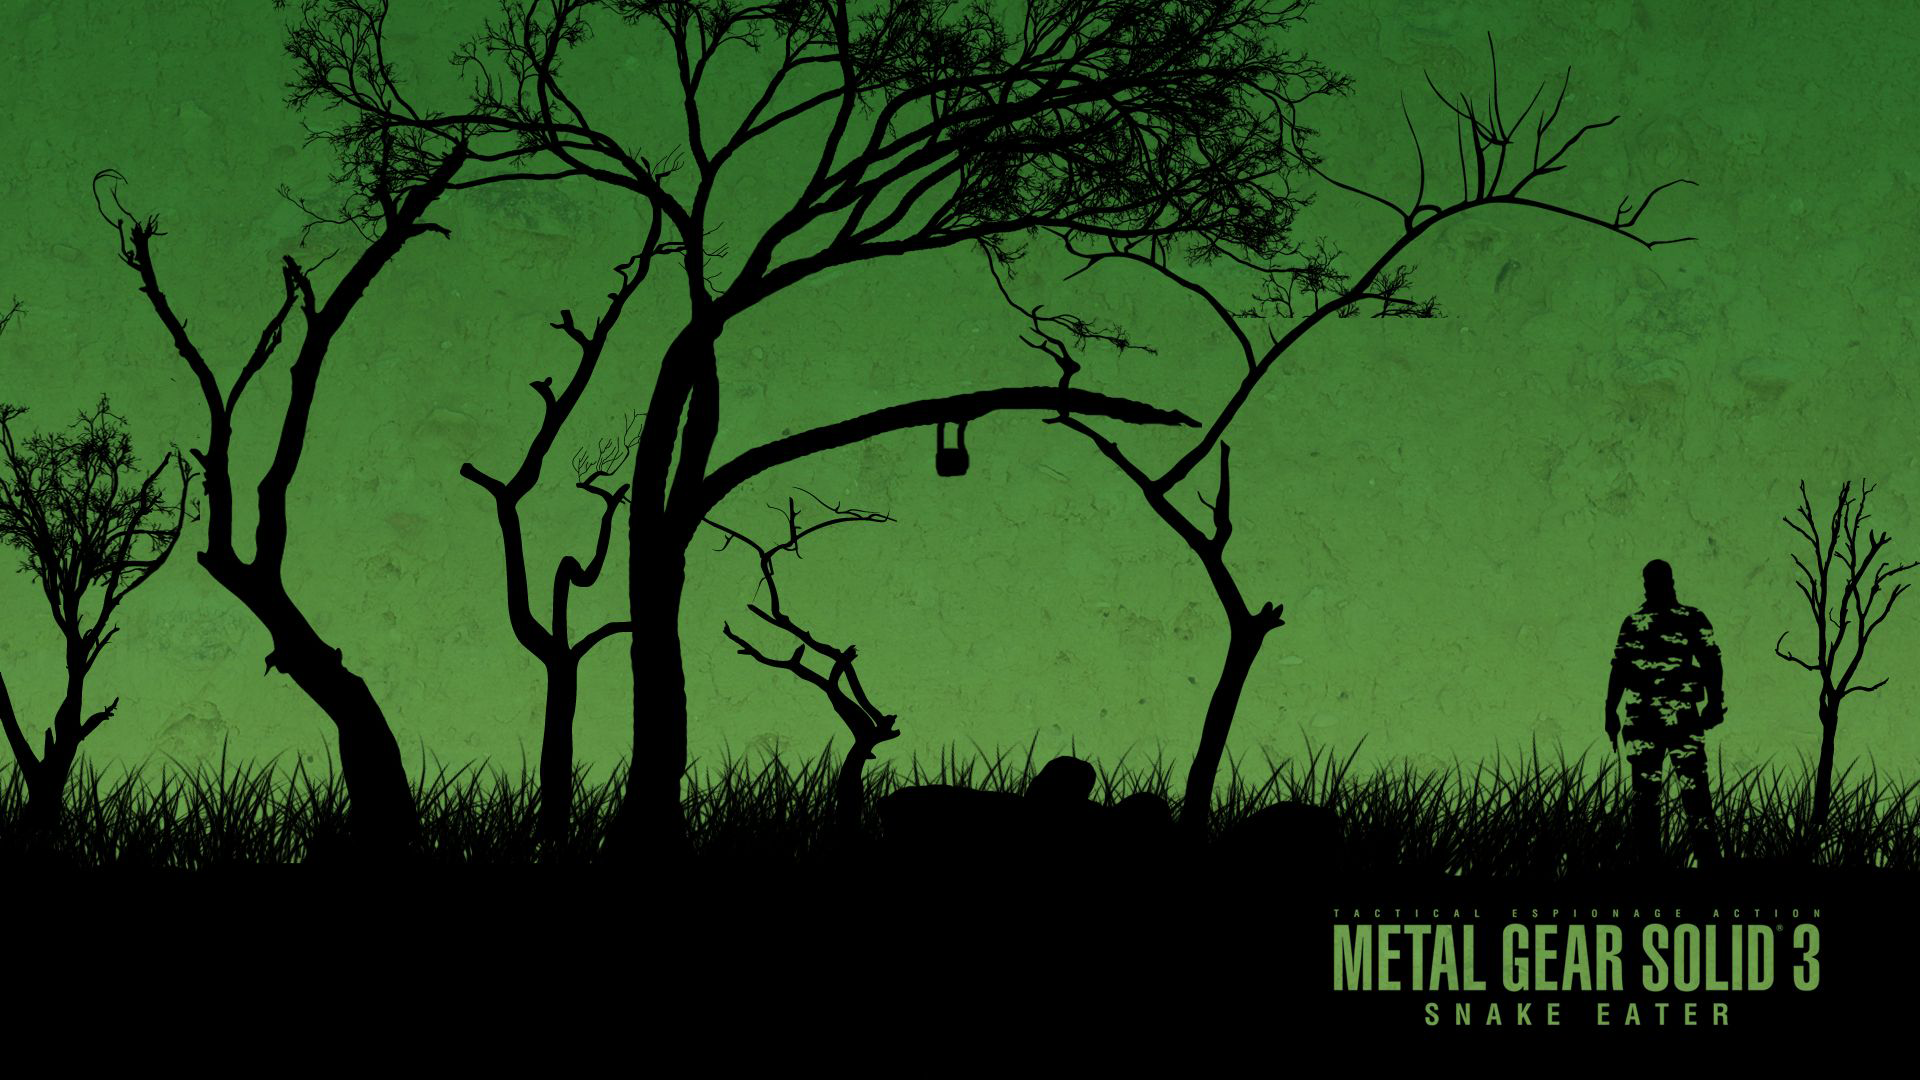 metal gear solid 3: snake eater full hd wallpaper and background